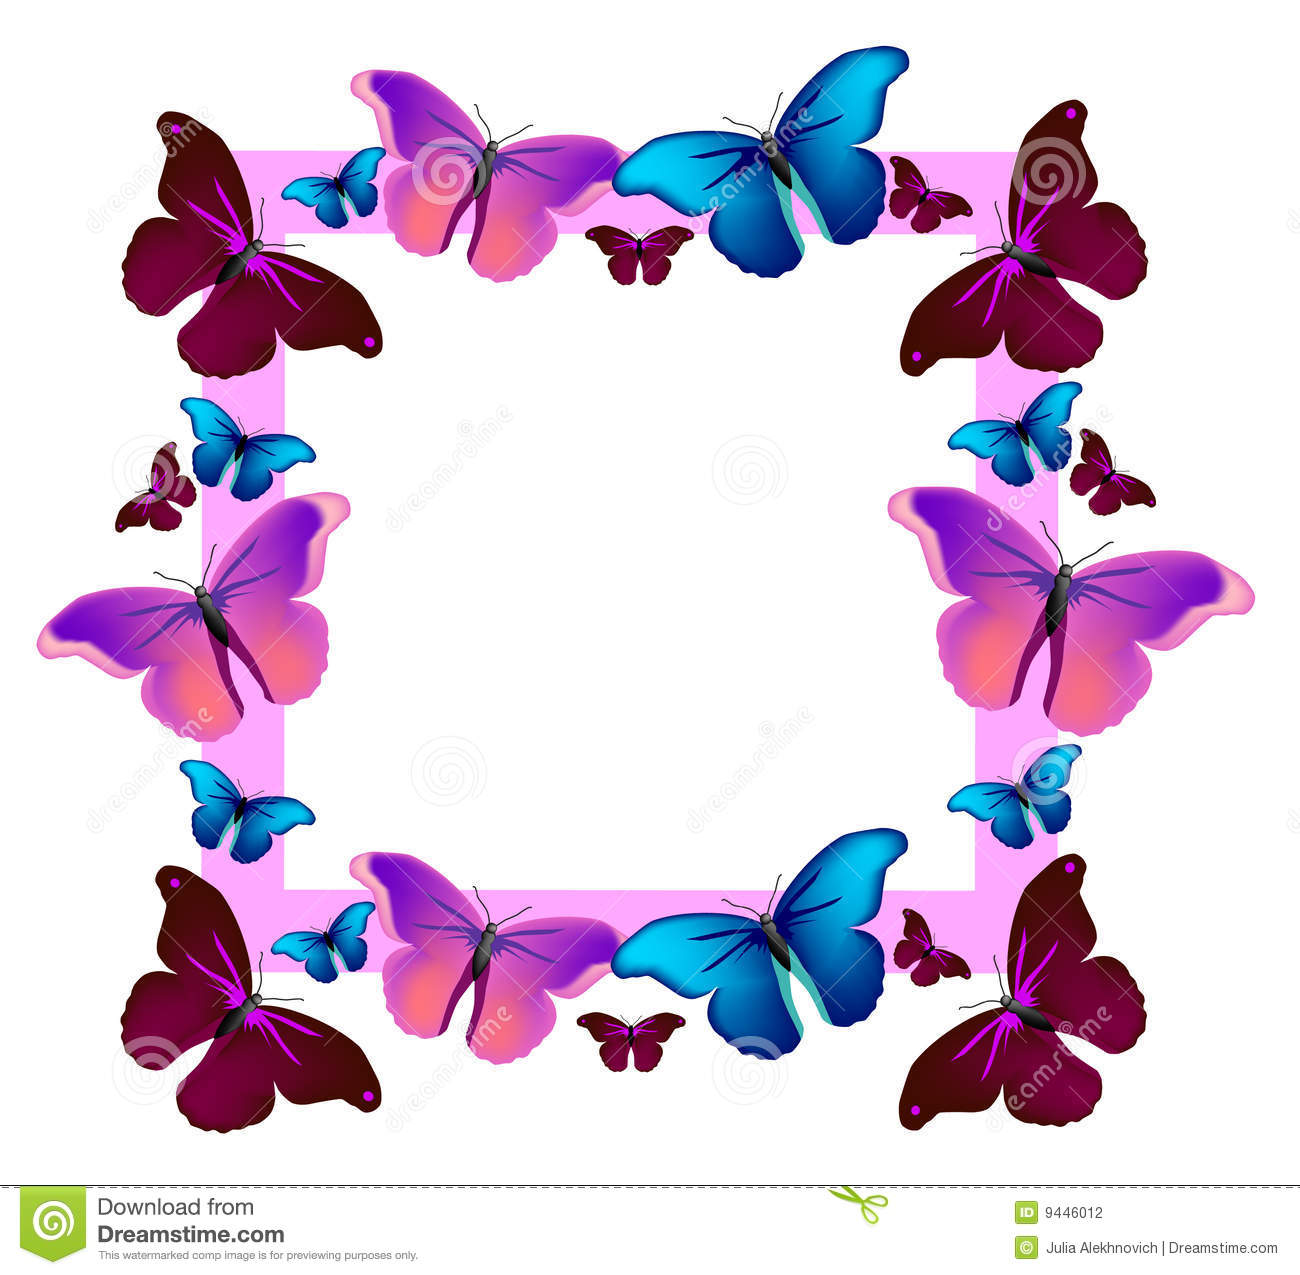 Vector colorful flying butterflies